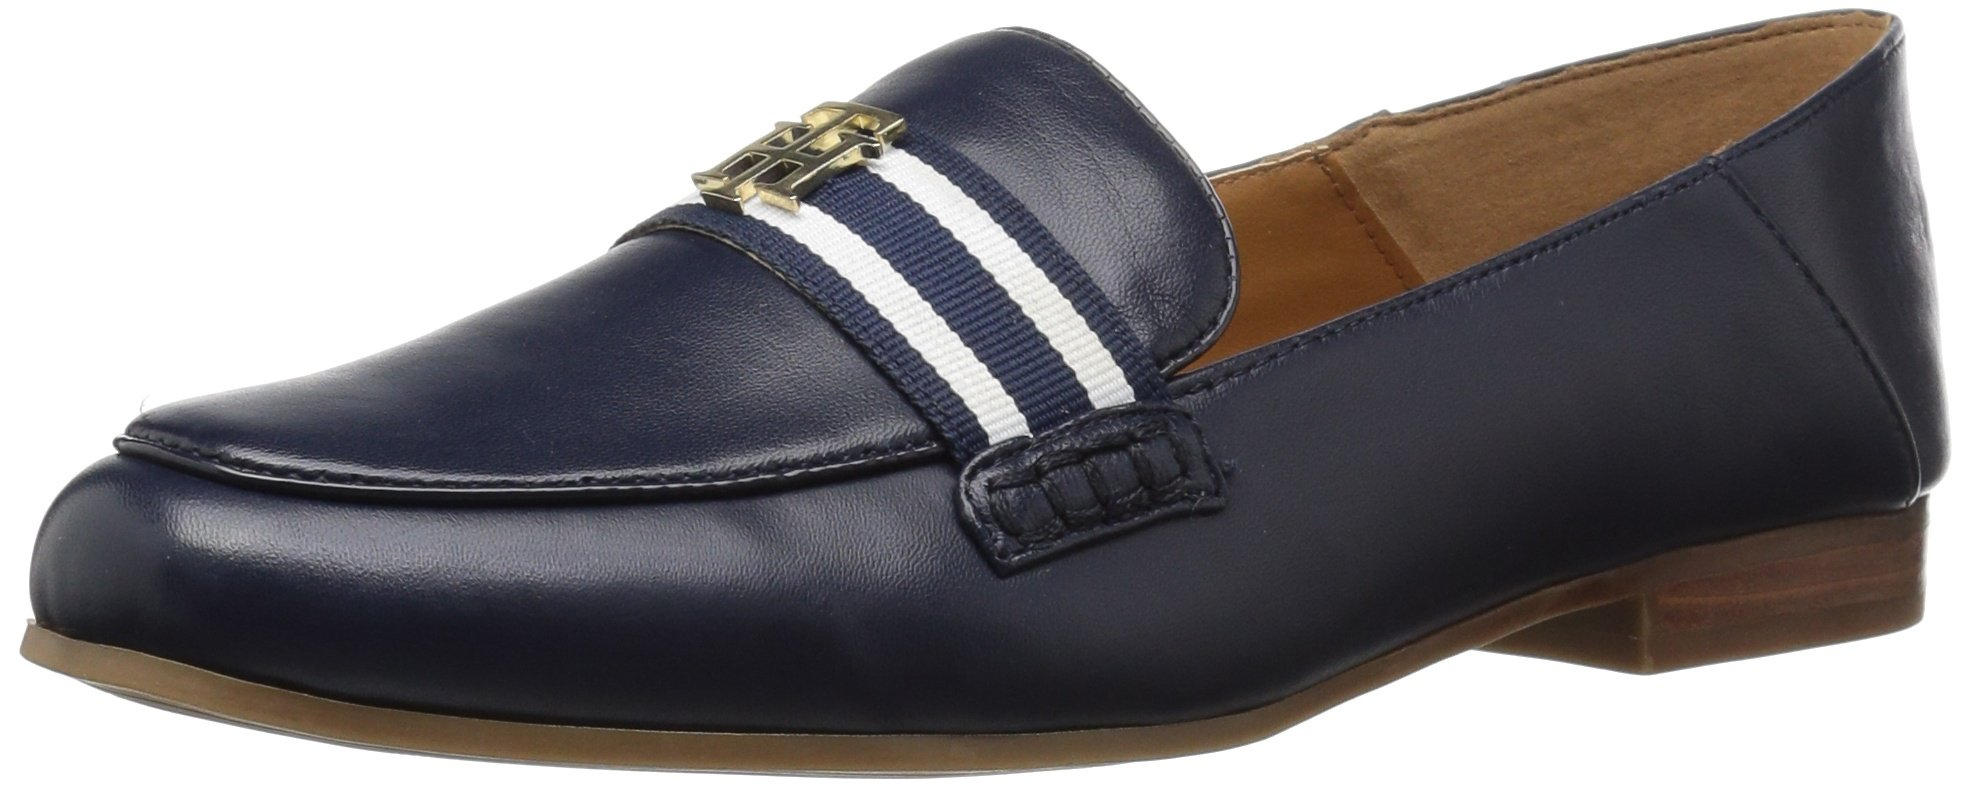 Tommy Hilfiger Women's Sheas Driving Style Loafer, Navy, 8.5 Medium US